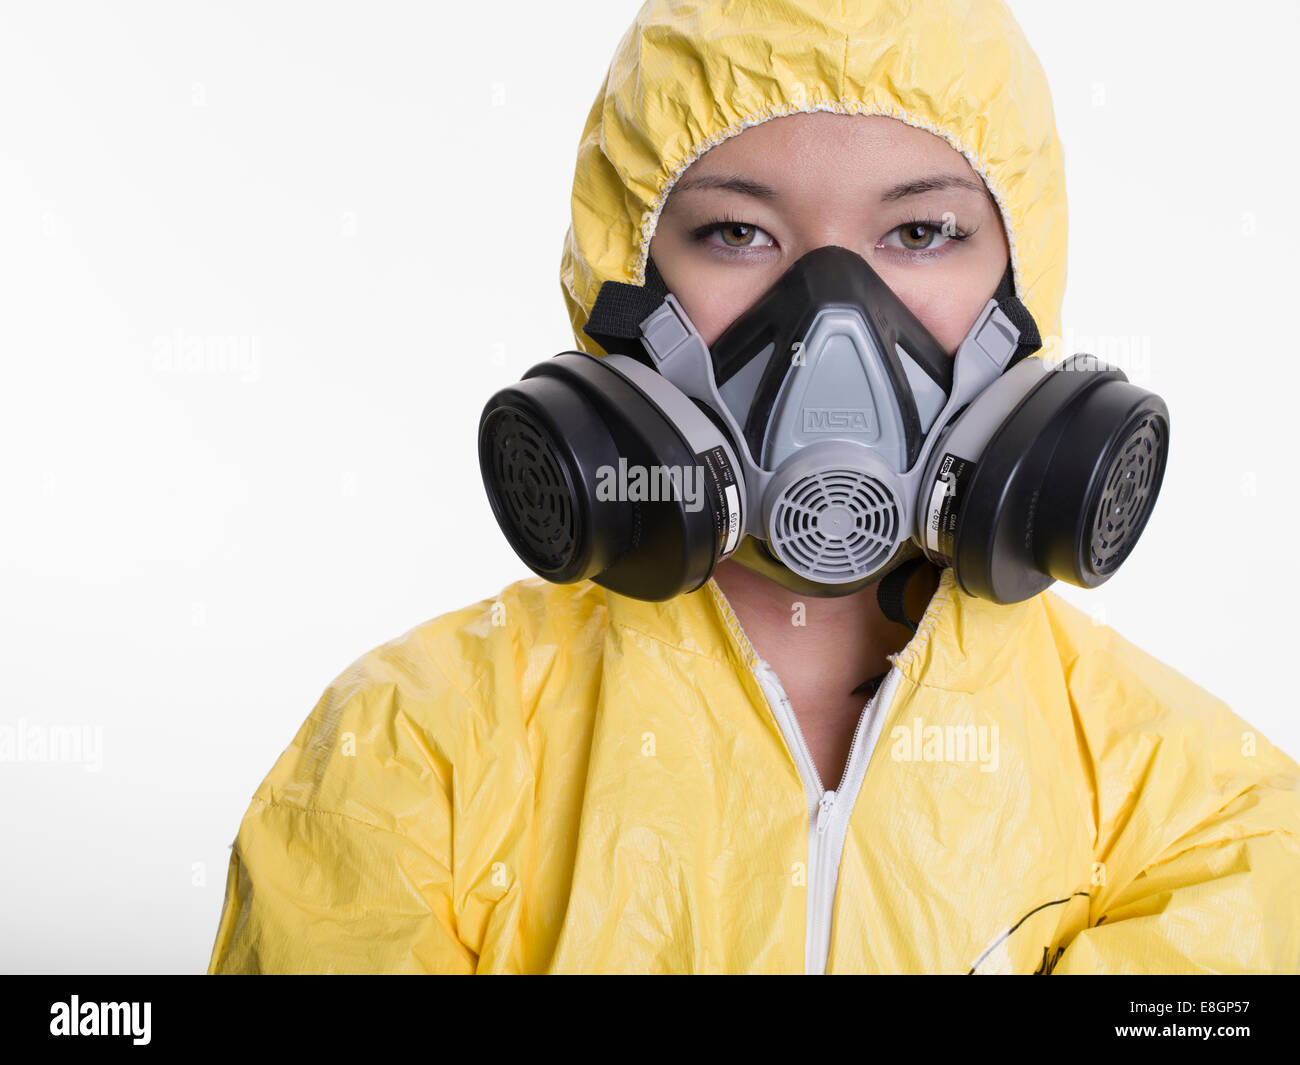 Woman with hazmat hazardous materials suit and gas mask - Stock Image